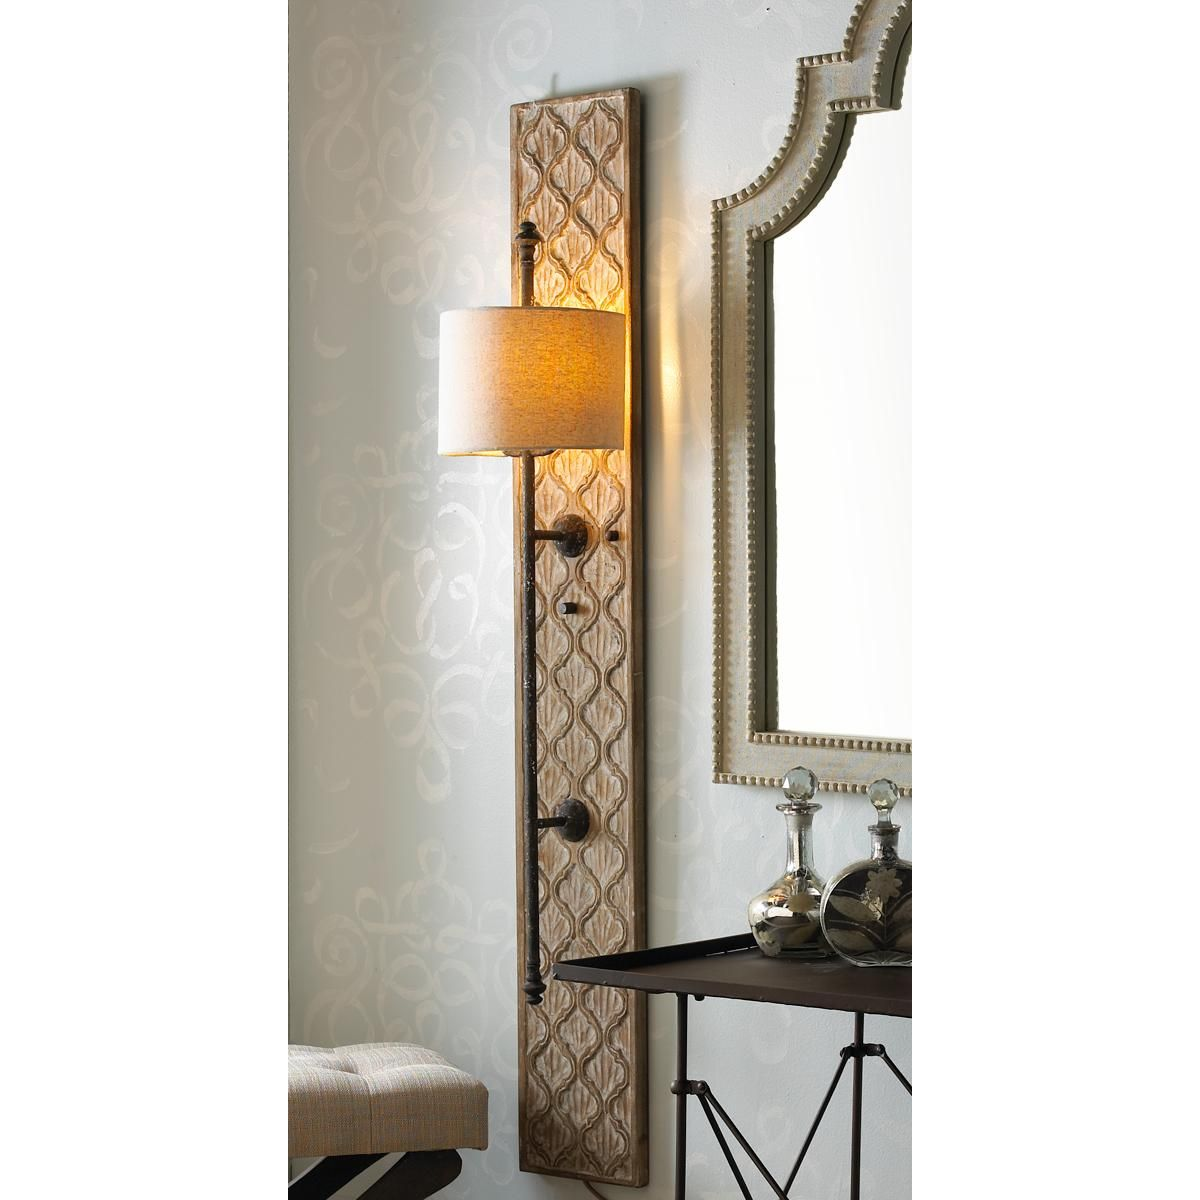 Quatrefoil Wooden Panel Sconce Interior Wall Sconces Wall